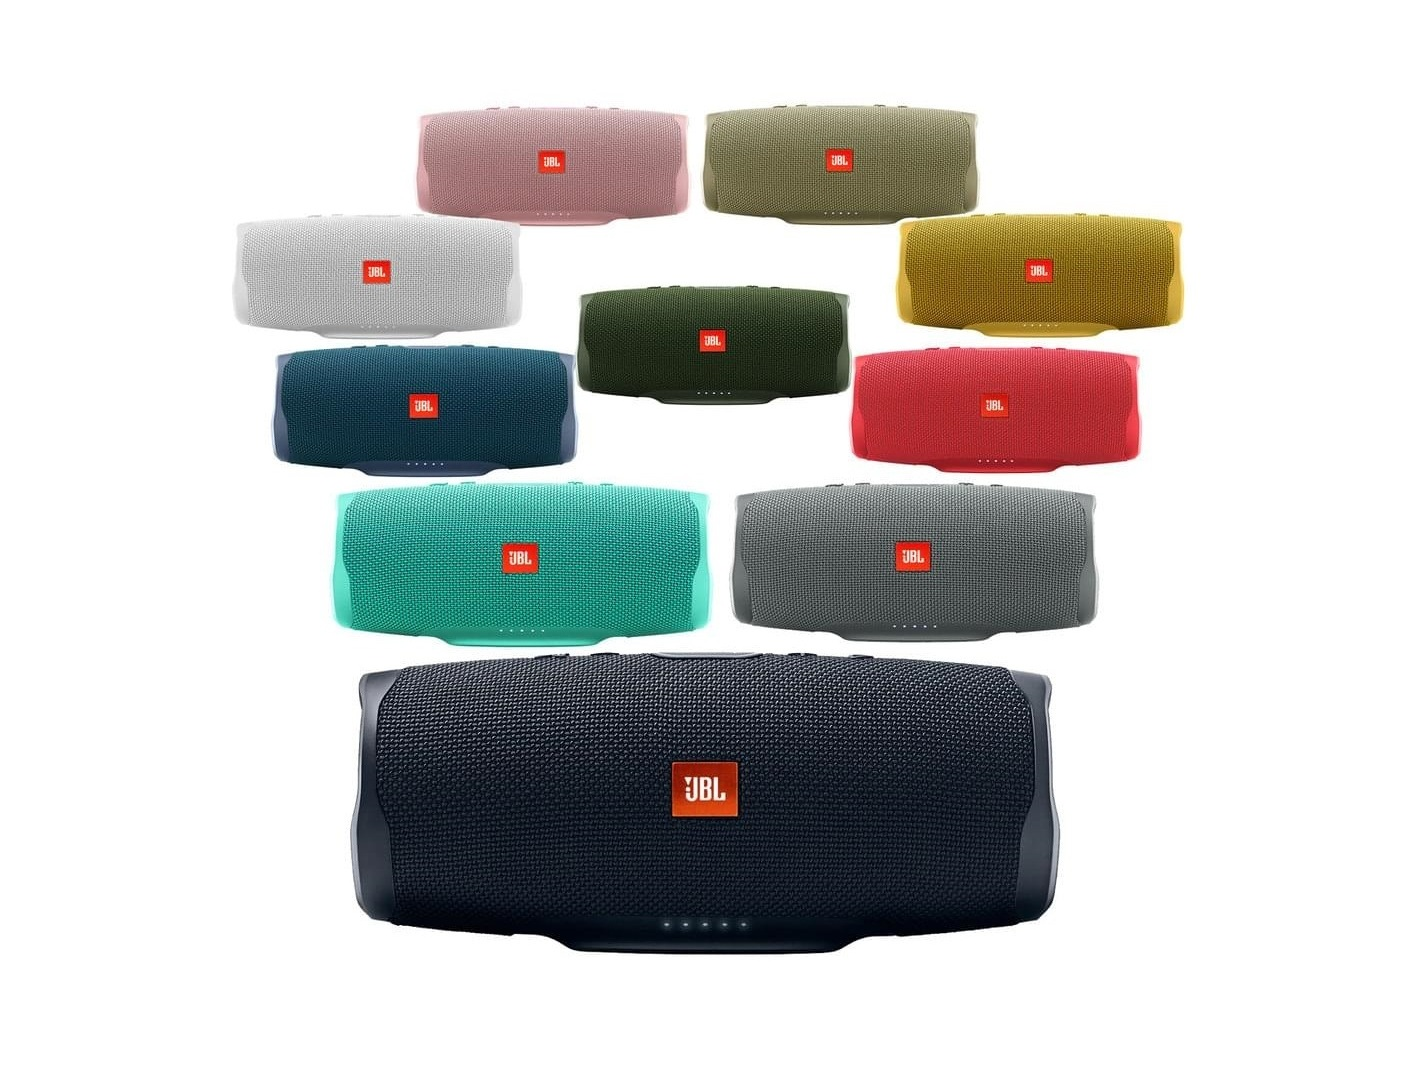 "<span style=""font-weight: bold;"">JBL Charge 4 </span><br>"